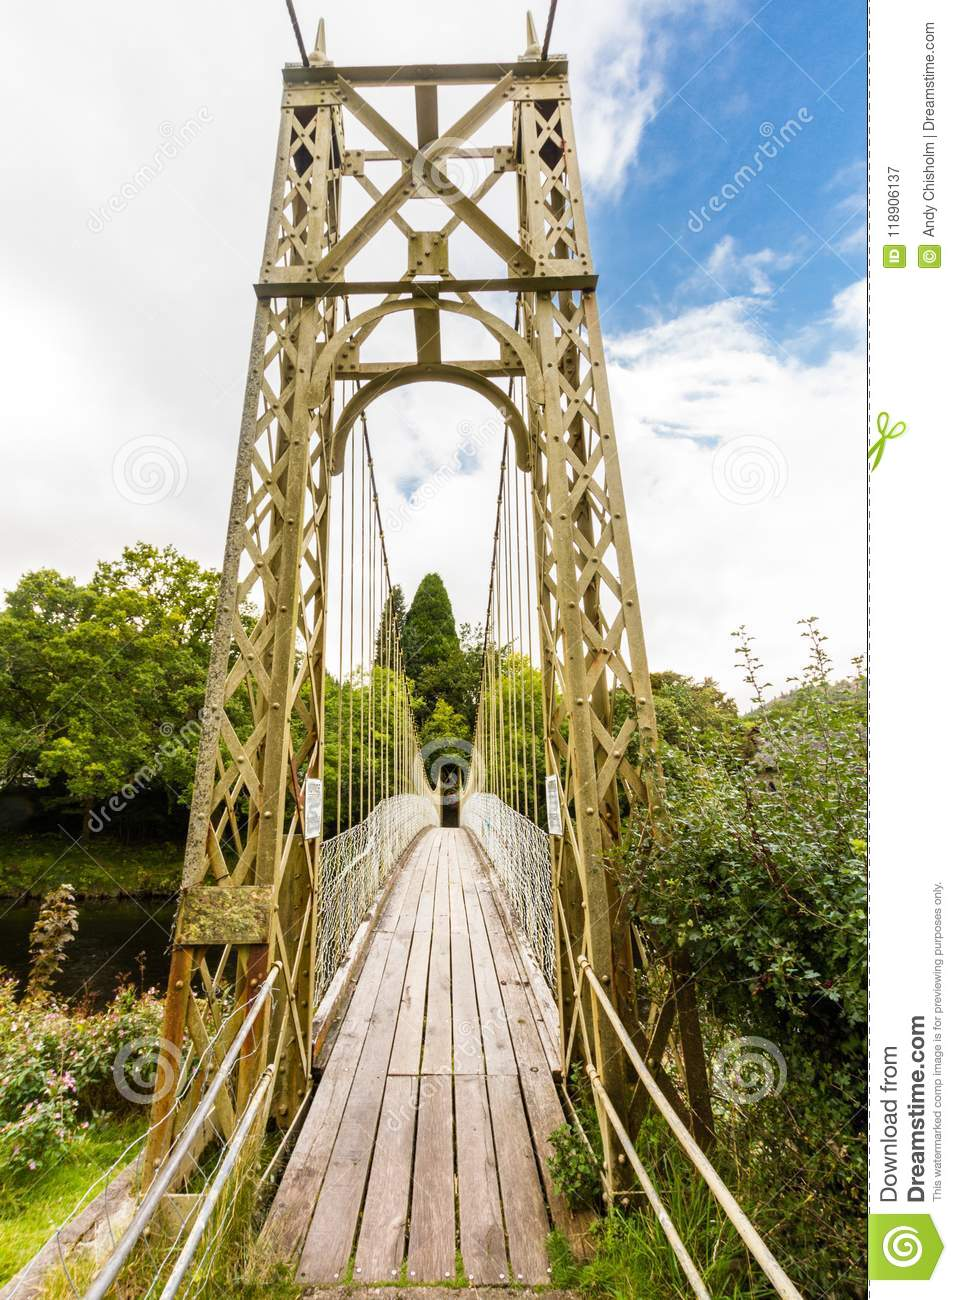 Wooden suspension bridge walkway.